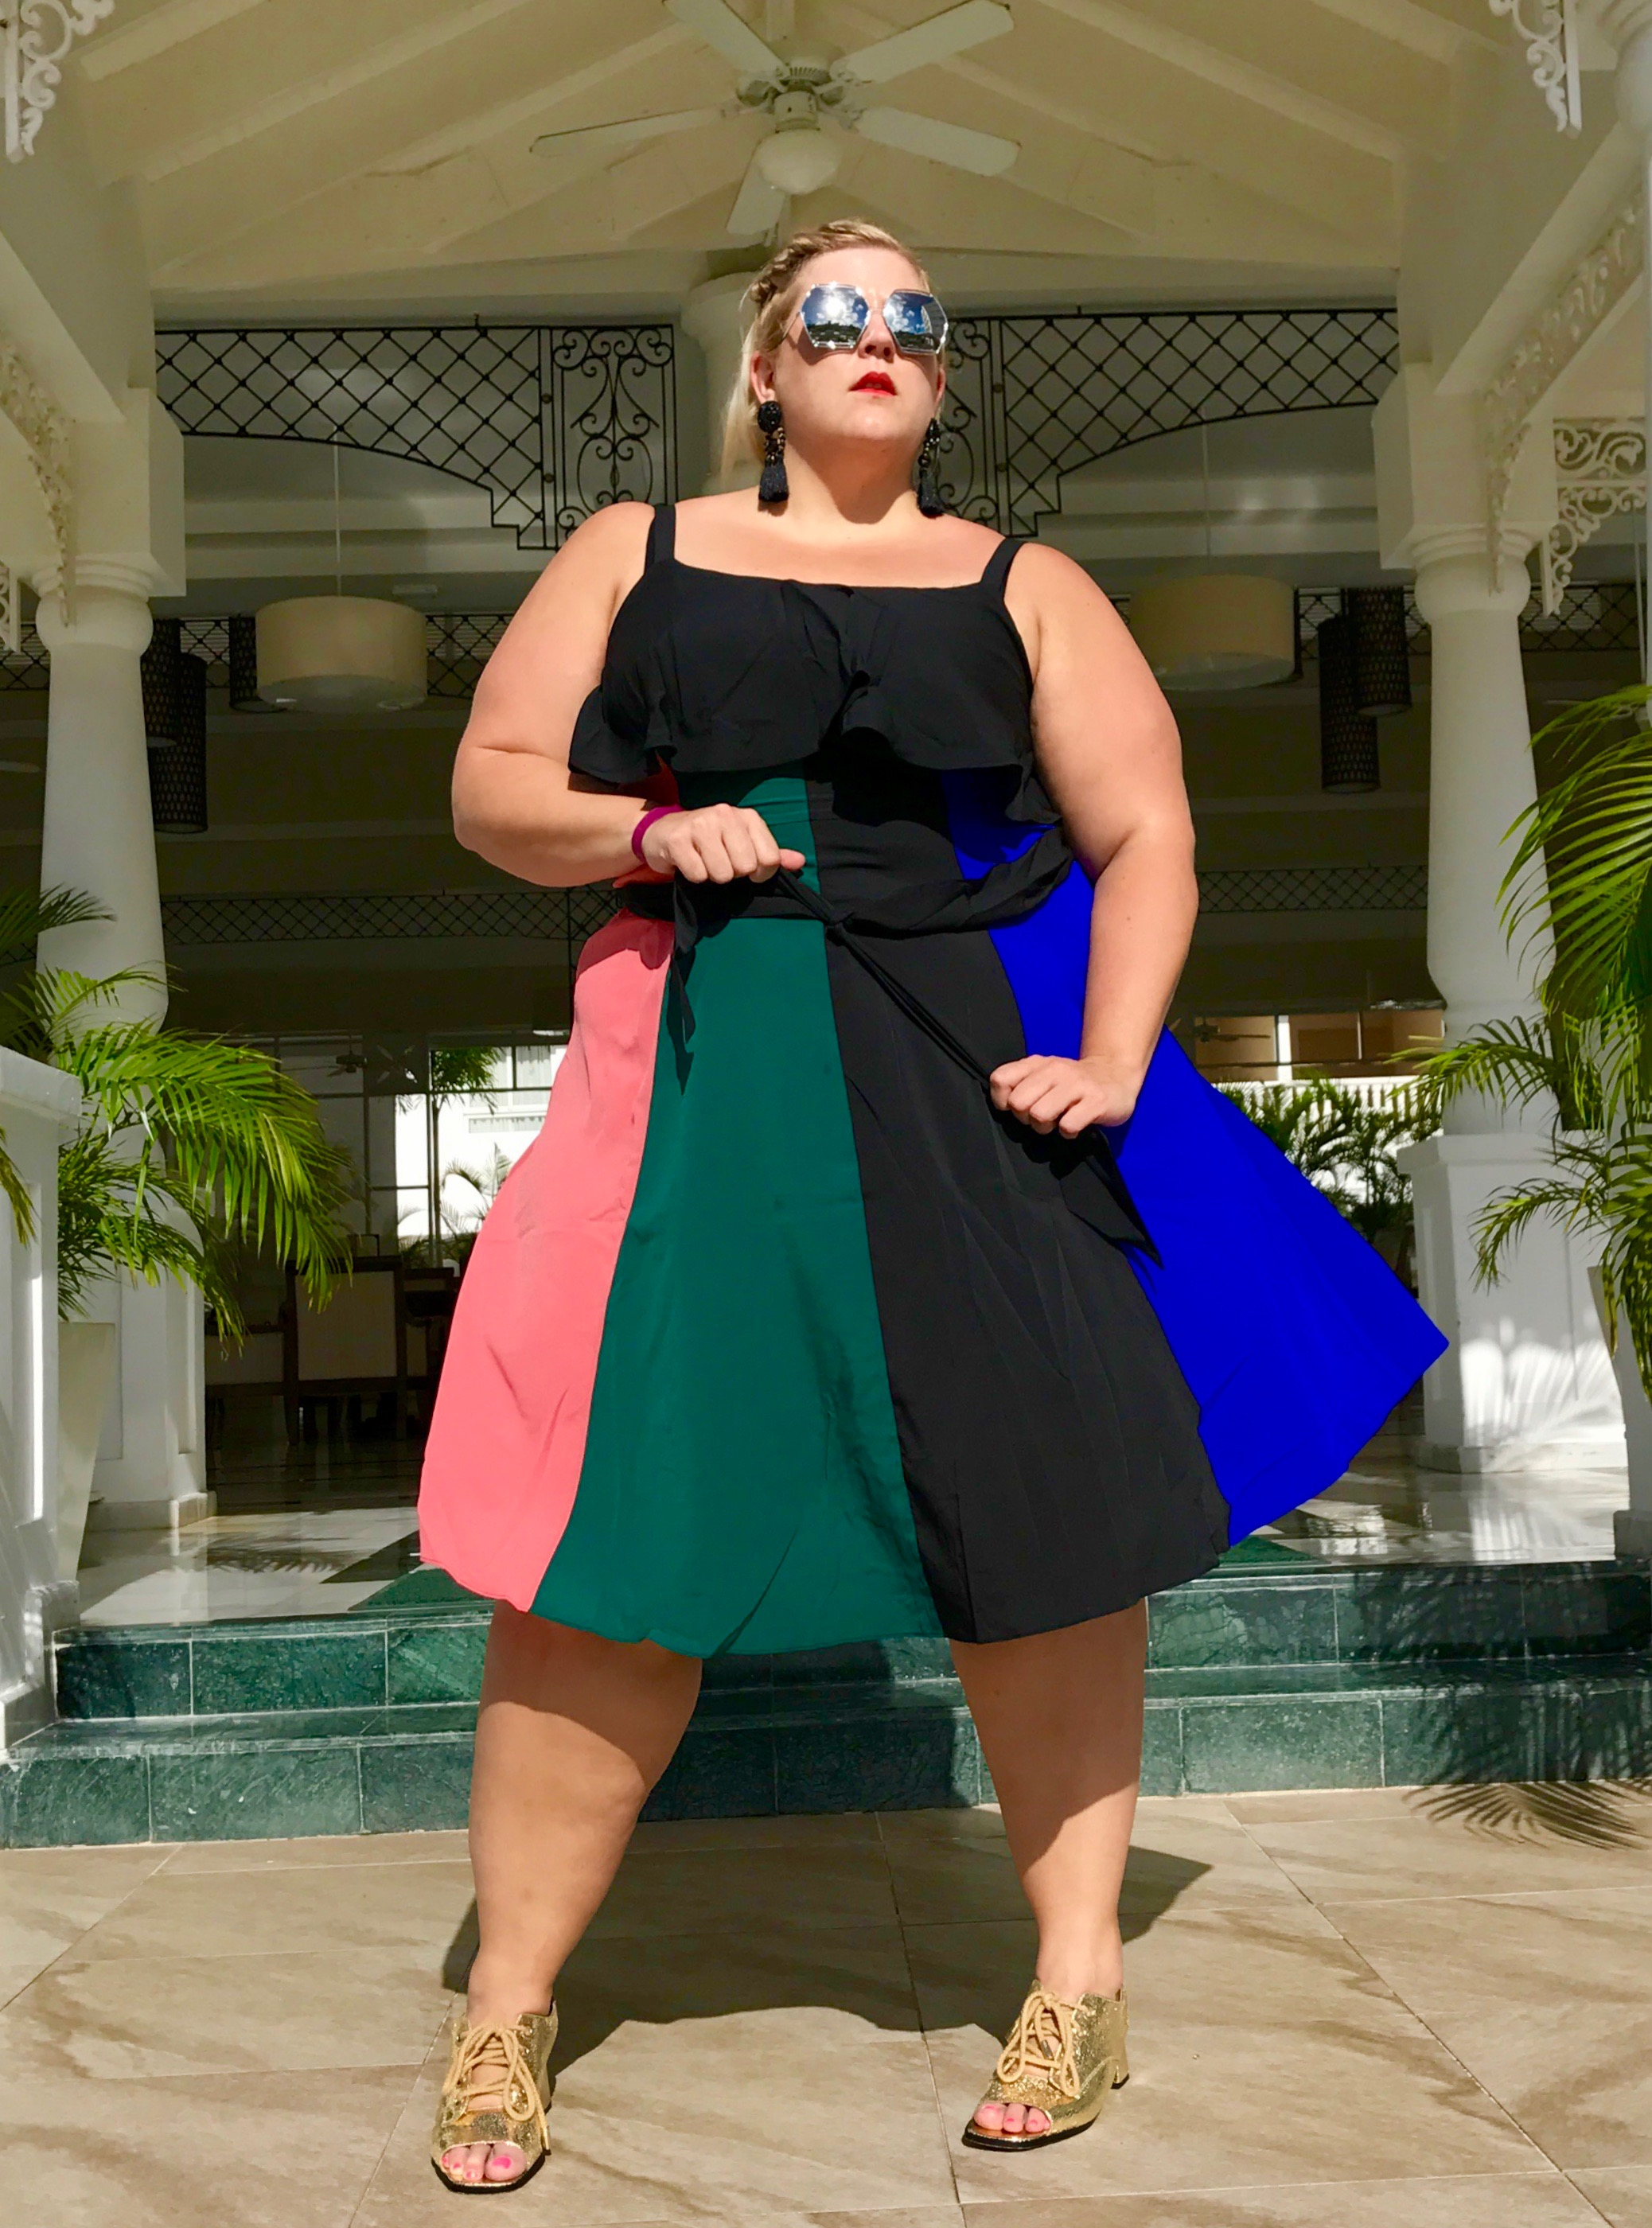 Plus Size Women On Vacation Should Own This Dress